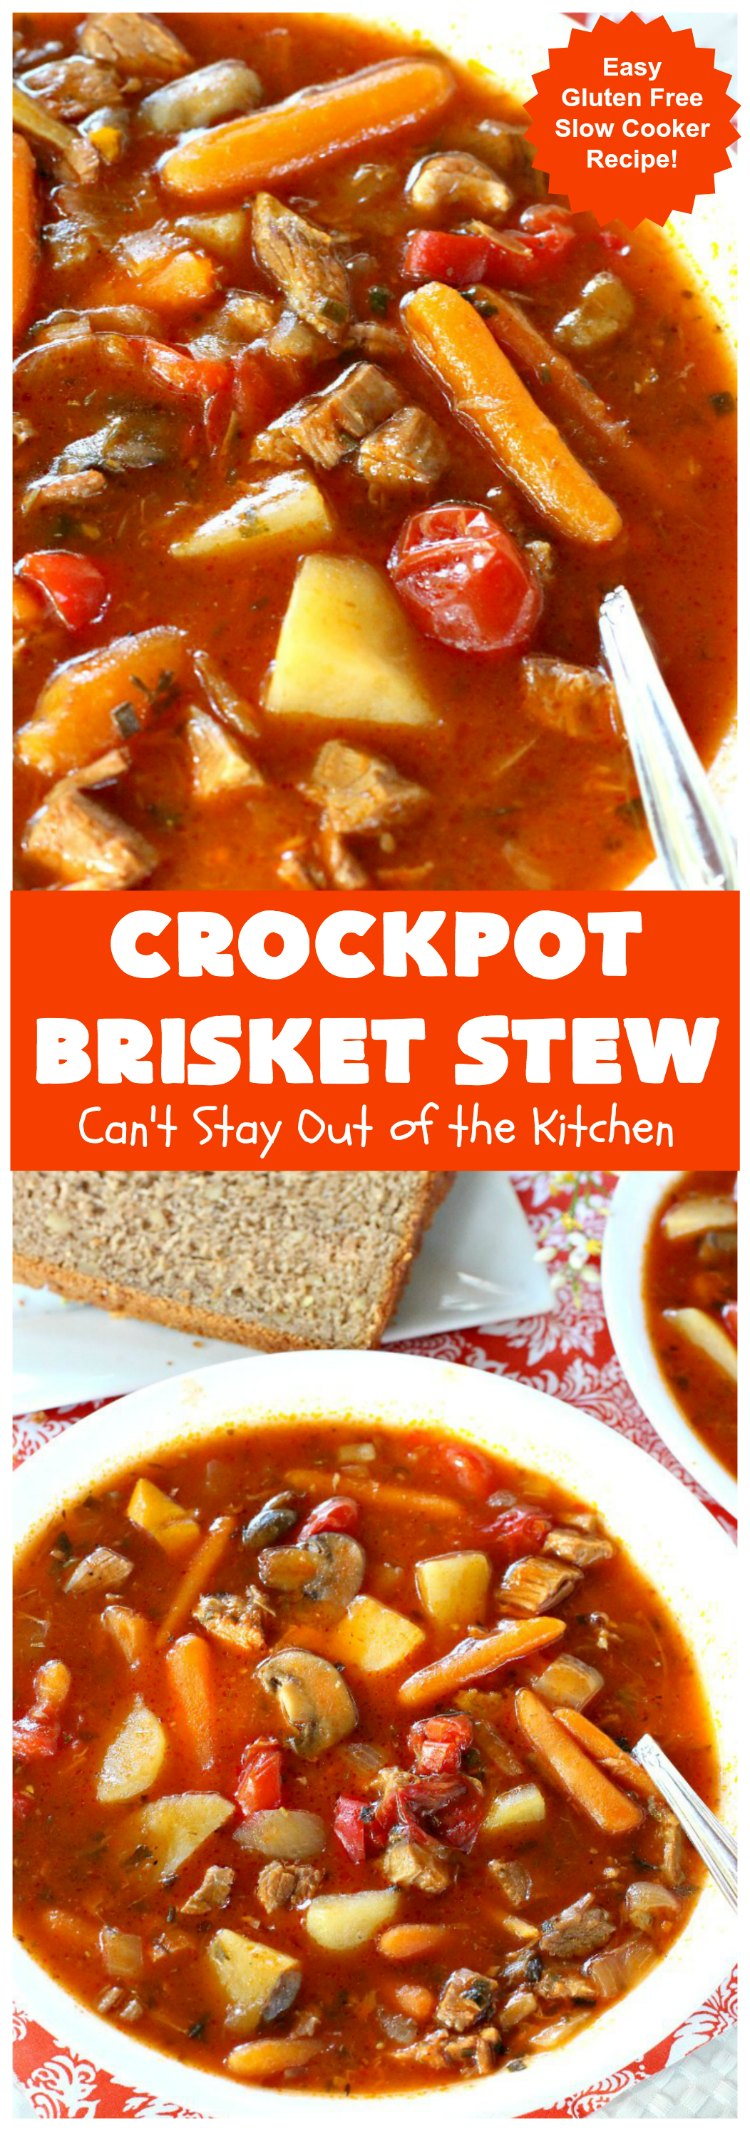 Crockpot Brisket Stew | Can't Stay Out of the Kitchen | This #recipe is so easy since everything is tossed into the #crockpot. It's an excellent way to use leftover #brisket. #SlowCooker #stew #CrockpotBrisketStew #GlutenFree